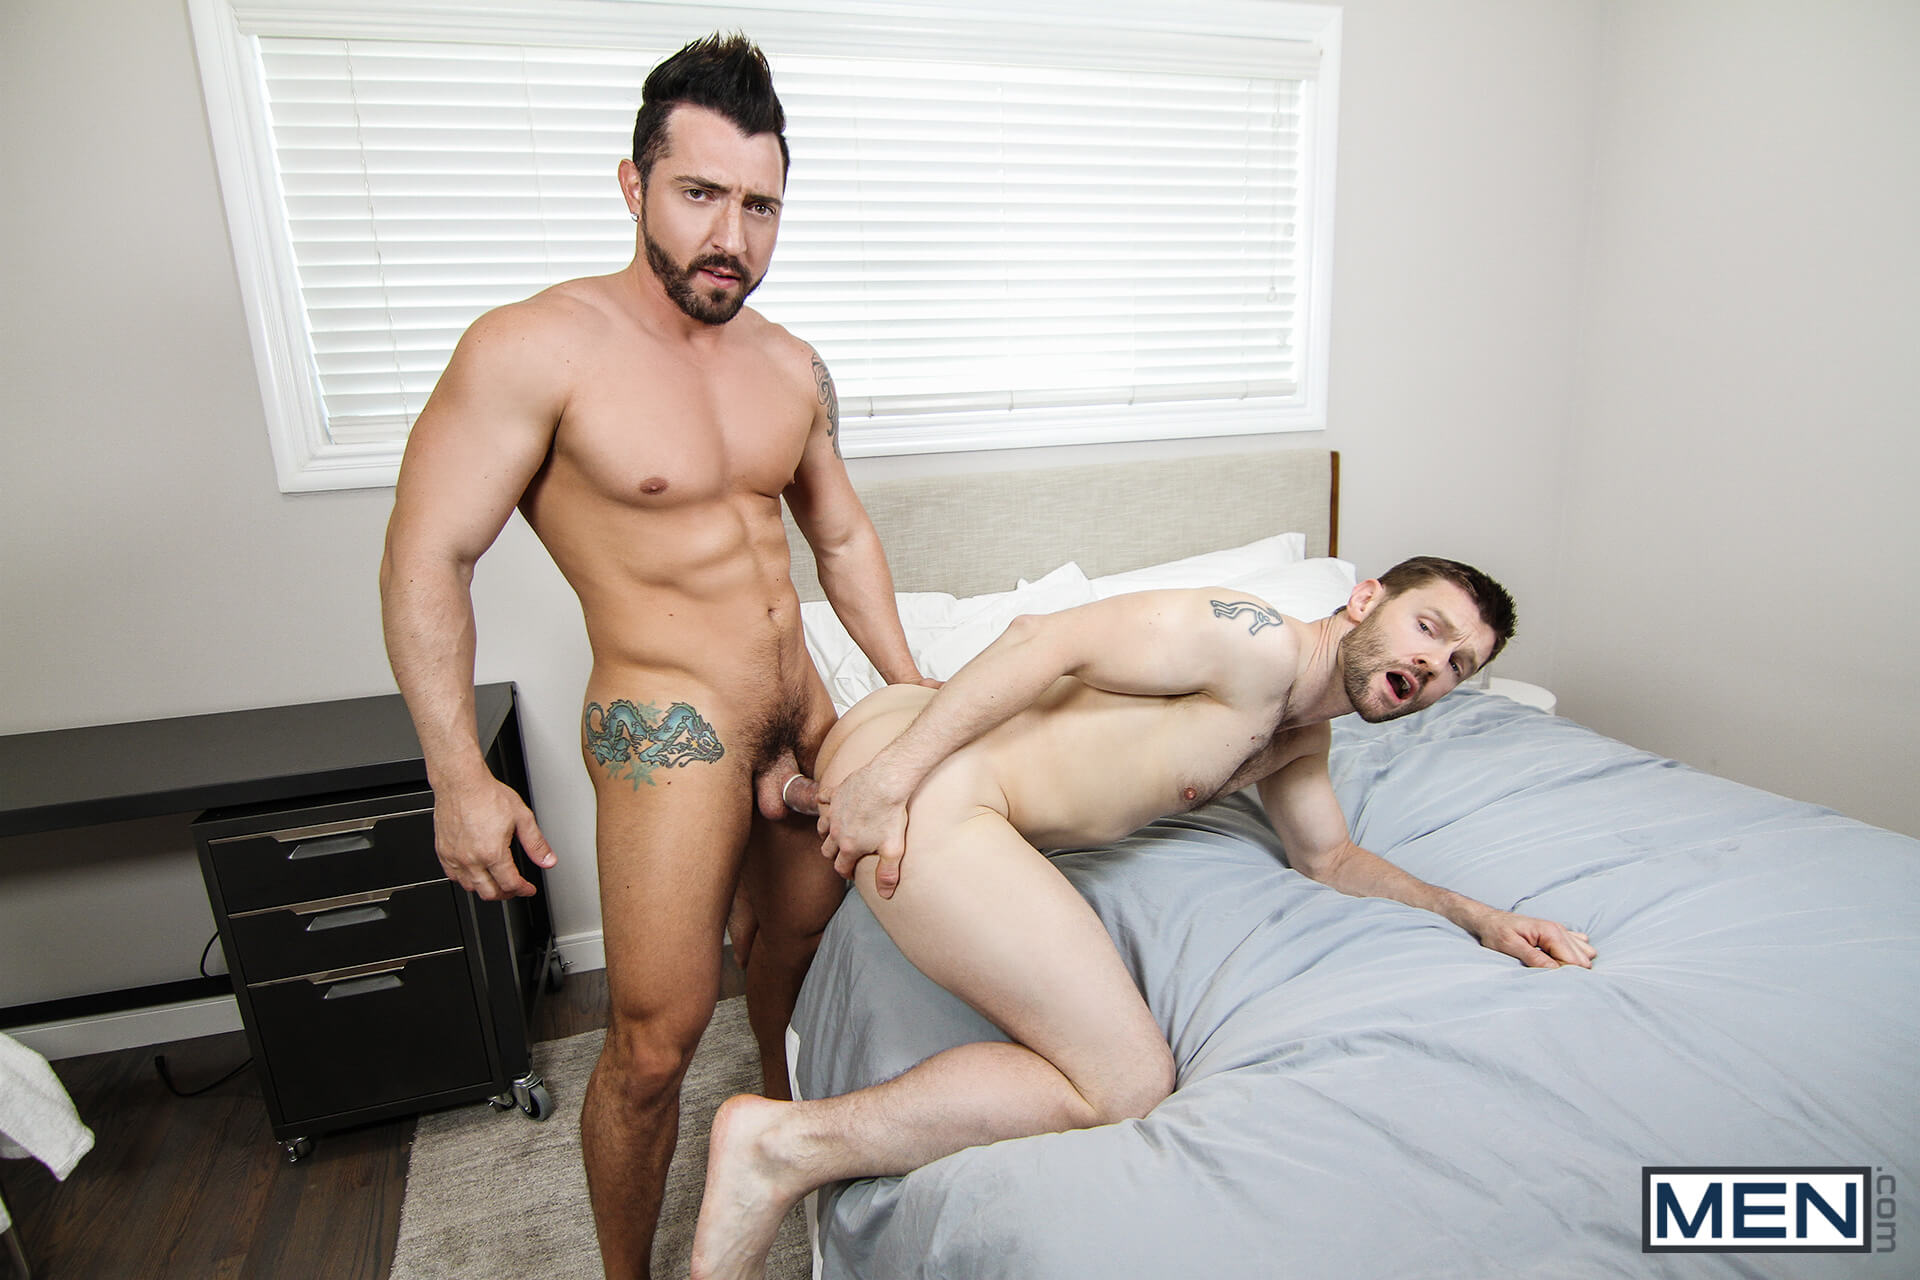 men drill my hole the new landlord dennis west jimmy durano gay porn blog image 20